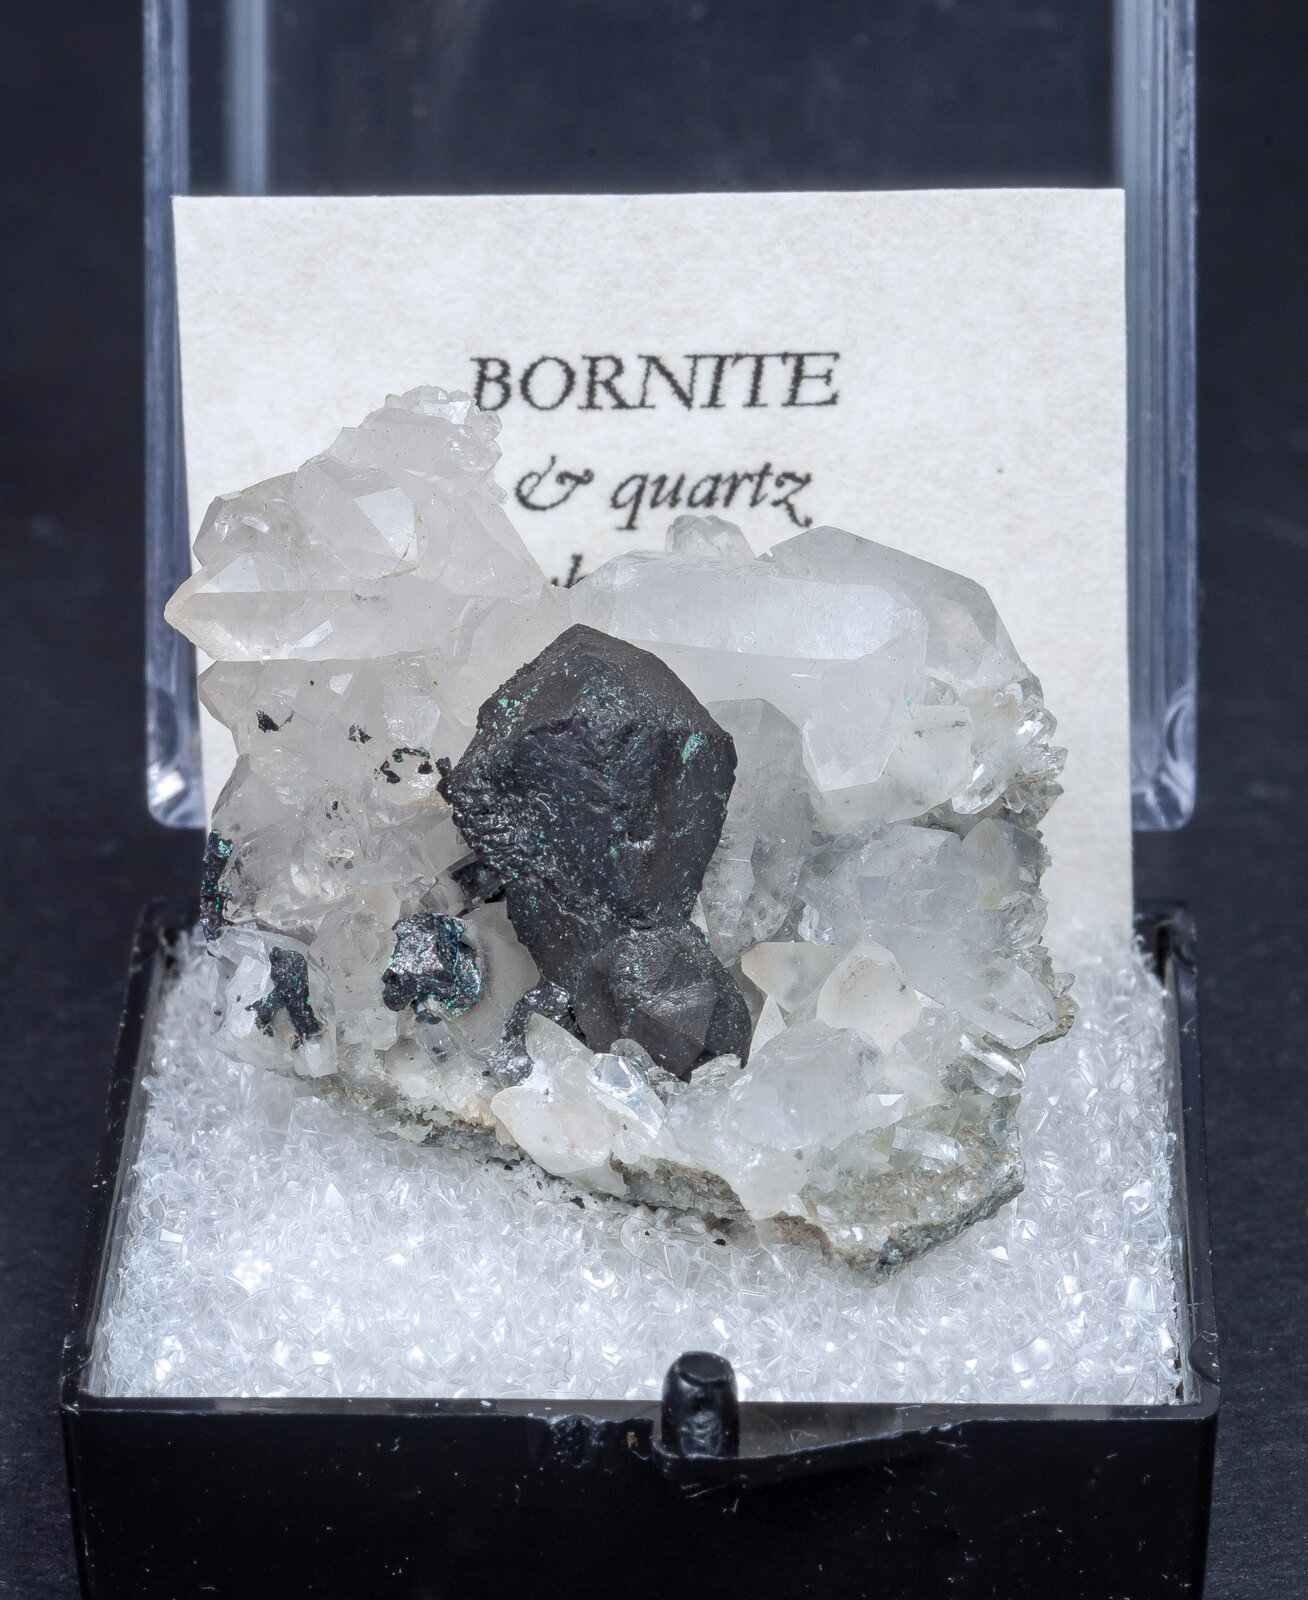 specimens/s_imagesAN0/Bornite-MJ66AN0f.jpg